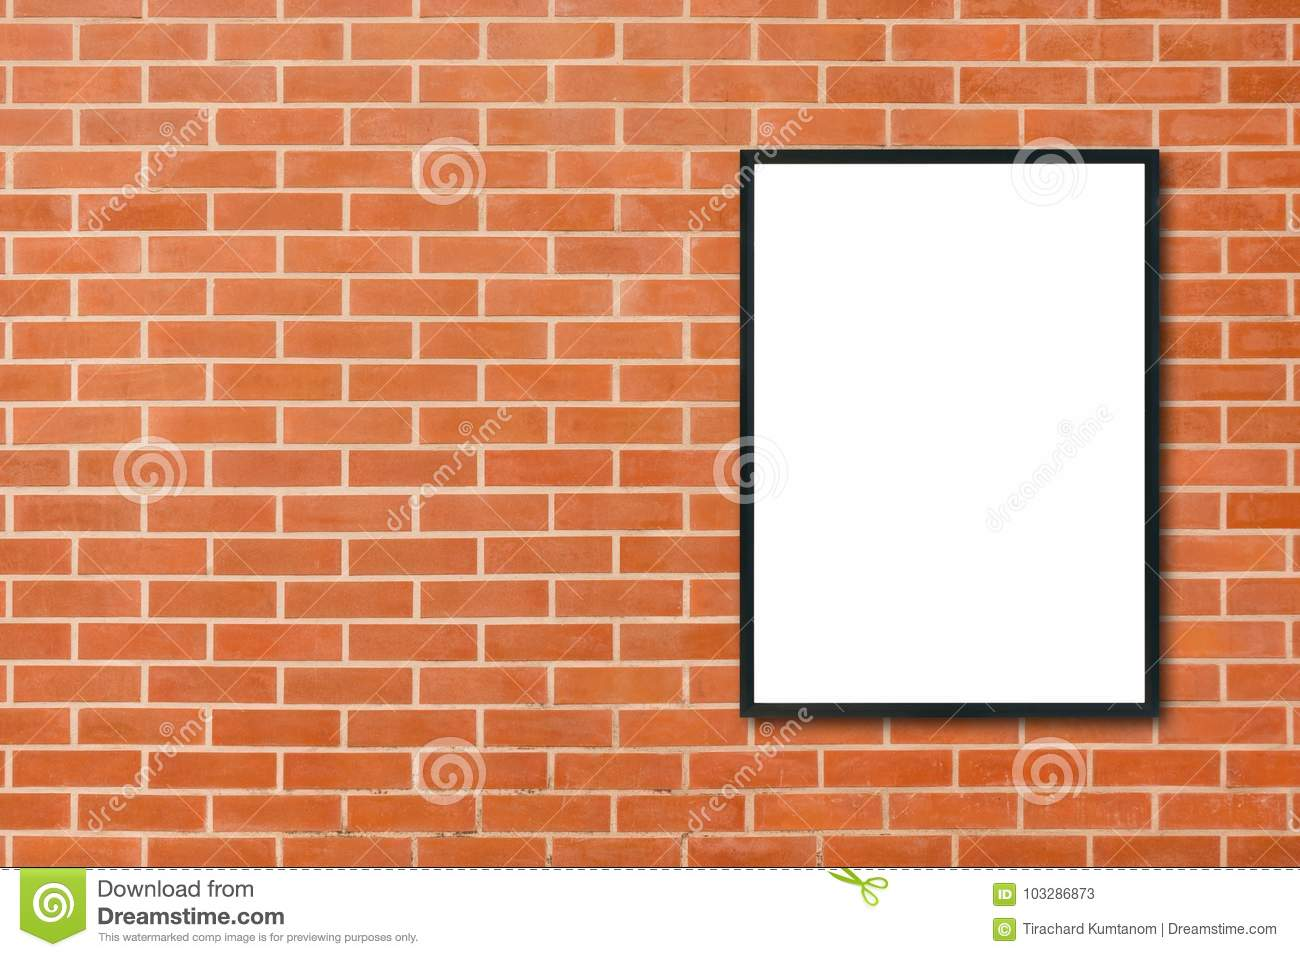 Mock up blank poster picture frame hanging on red brick wall background in room - can be used mock up for montage products display